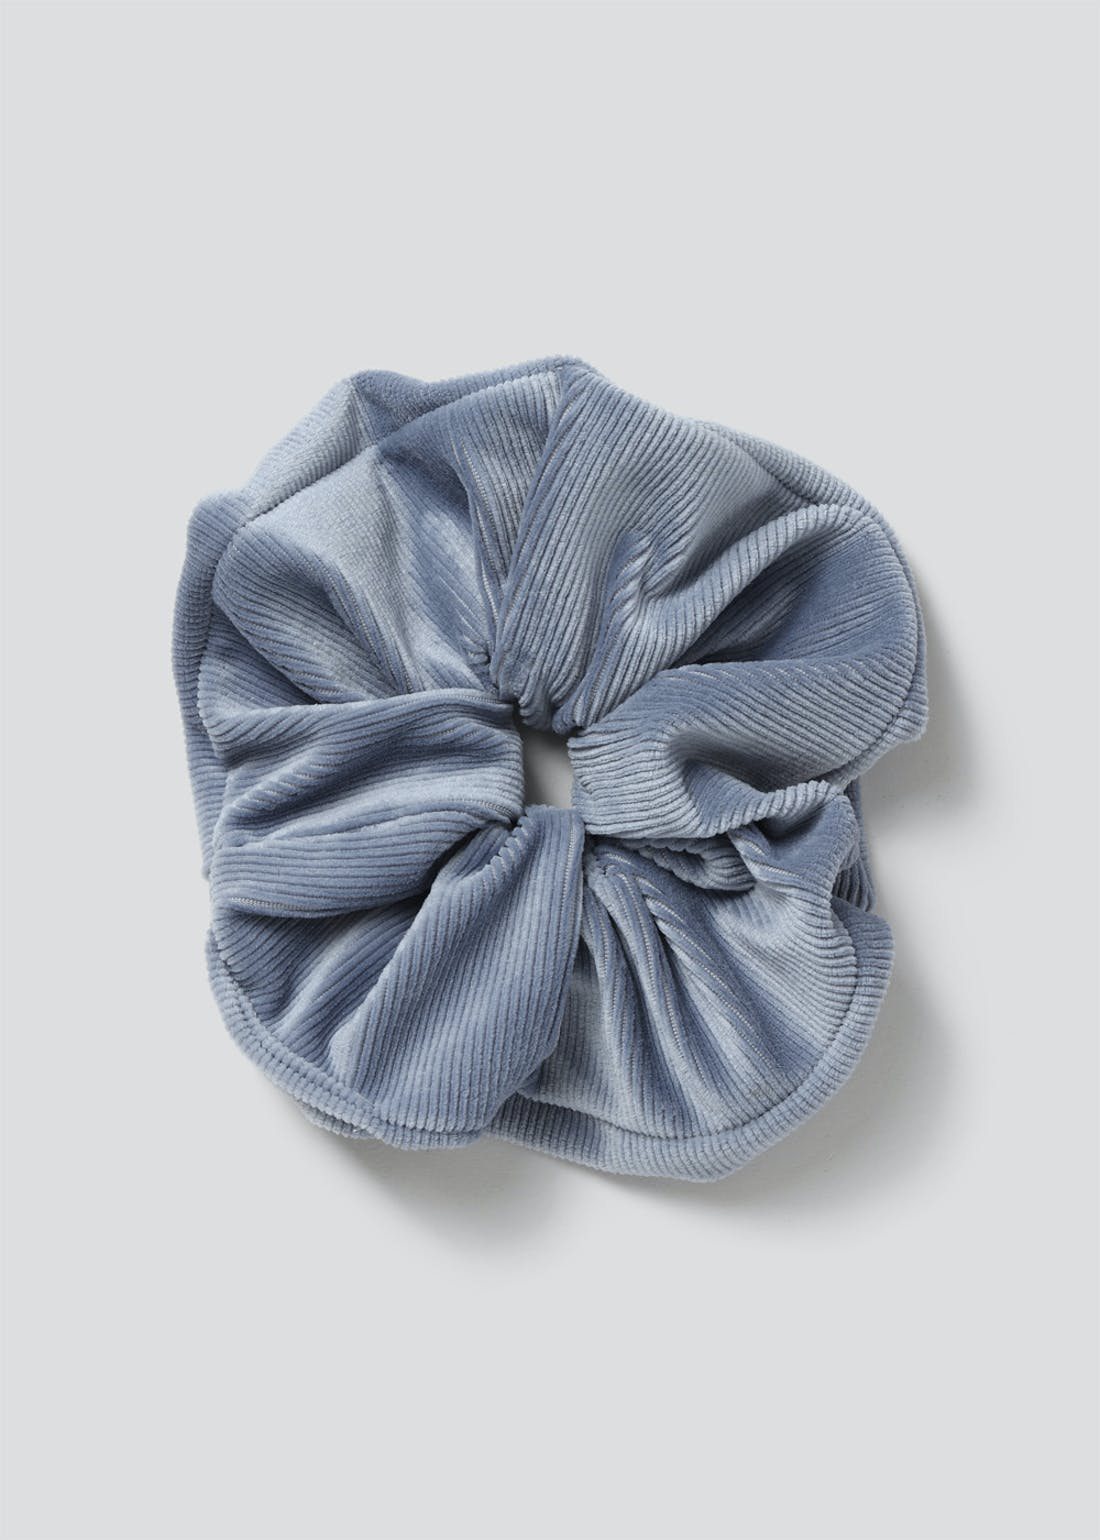 Ribbed Oversized Scrunchie.